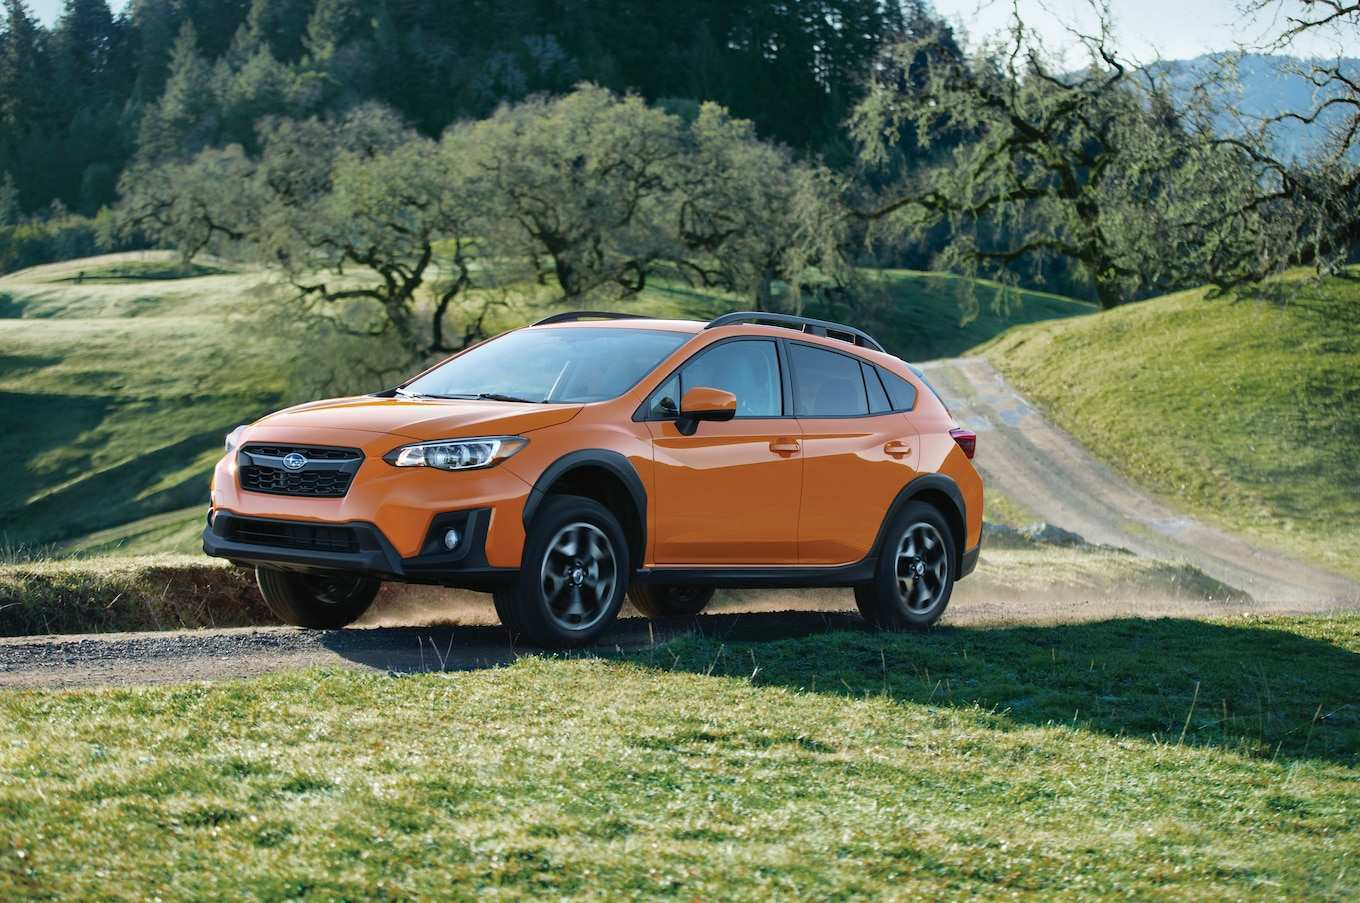 94 Gallery of Subaru Plans For 2019 Concept Redesign And Review Speed Test with Subaru Plans For 2019 Concept Redesign And Review